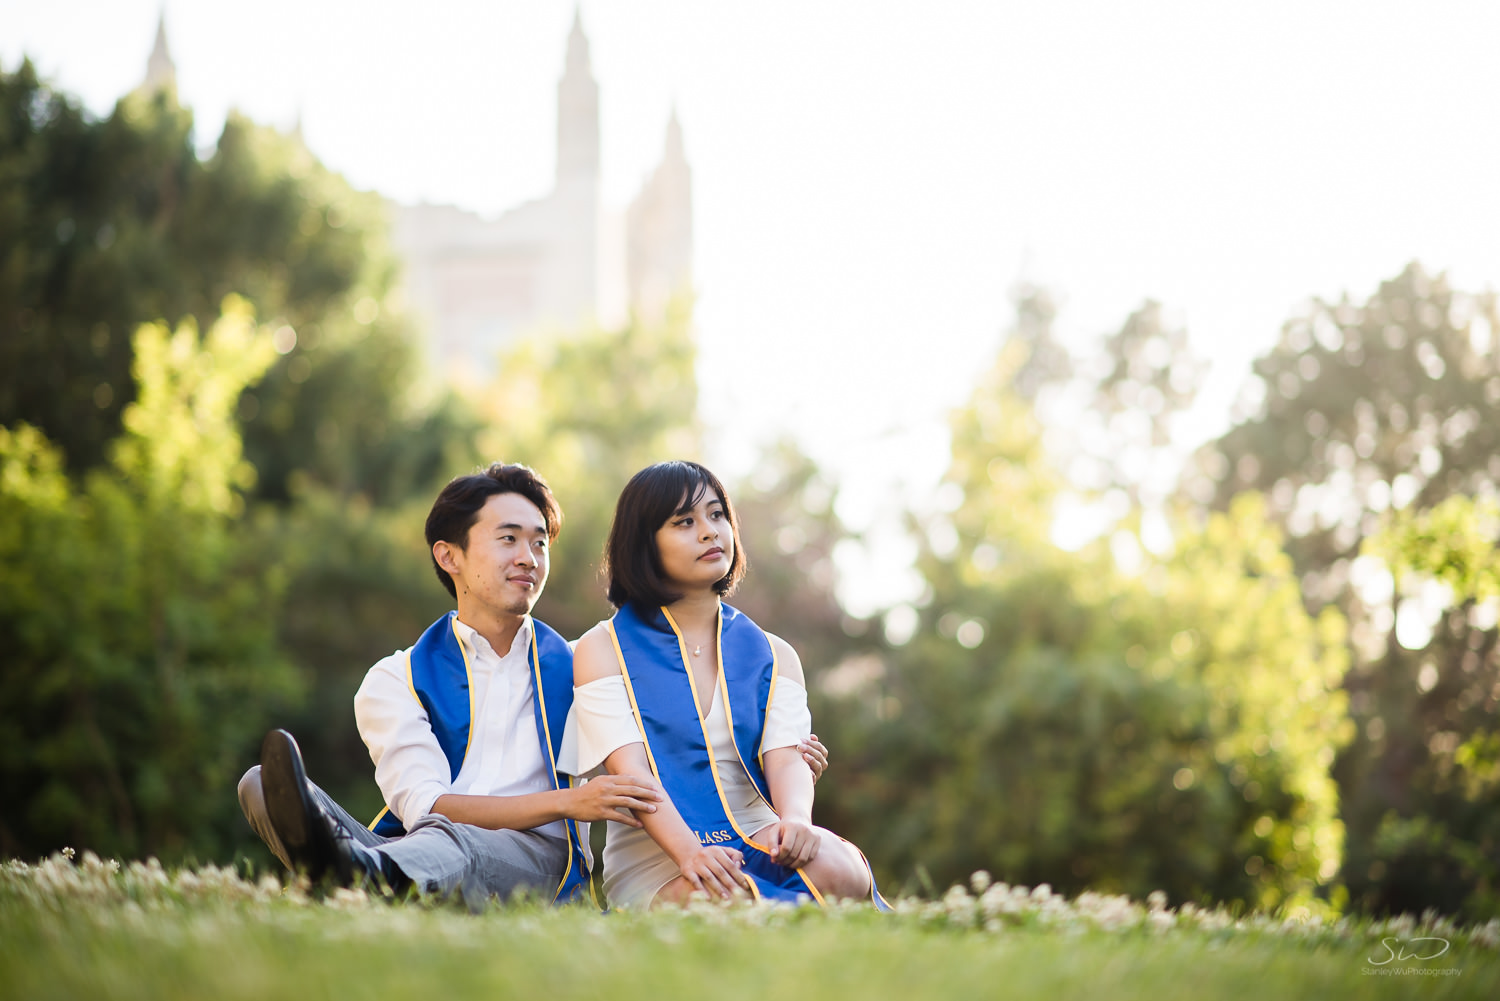 Copy of Copy of college senior couple posing together on grass wearing 2017 sashes  | Stanley Wu Photography | Los Angeles | Graduation Portraits | UCLA, USC, LMU, Pepperdine, CSULA, CSUN, CSULB, UCI, UCSD